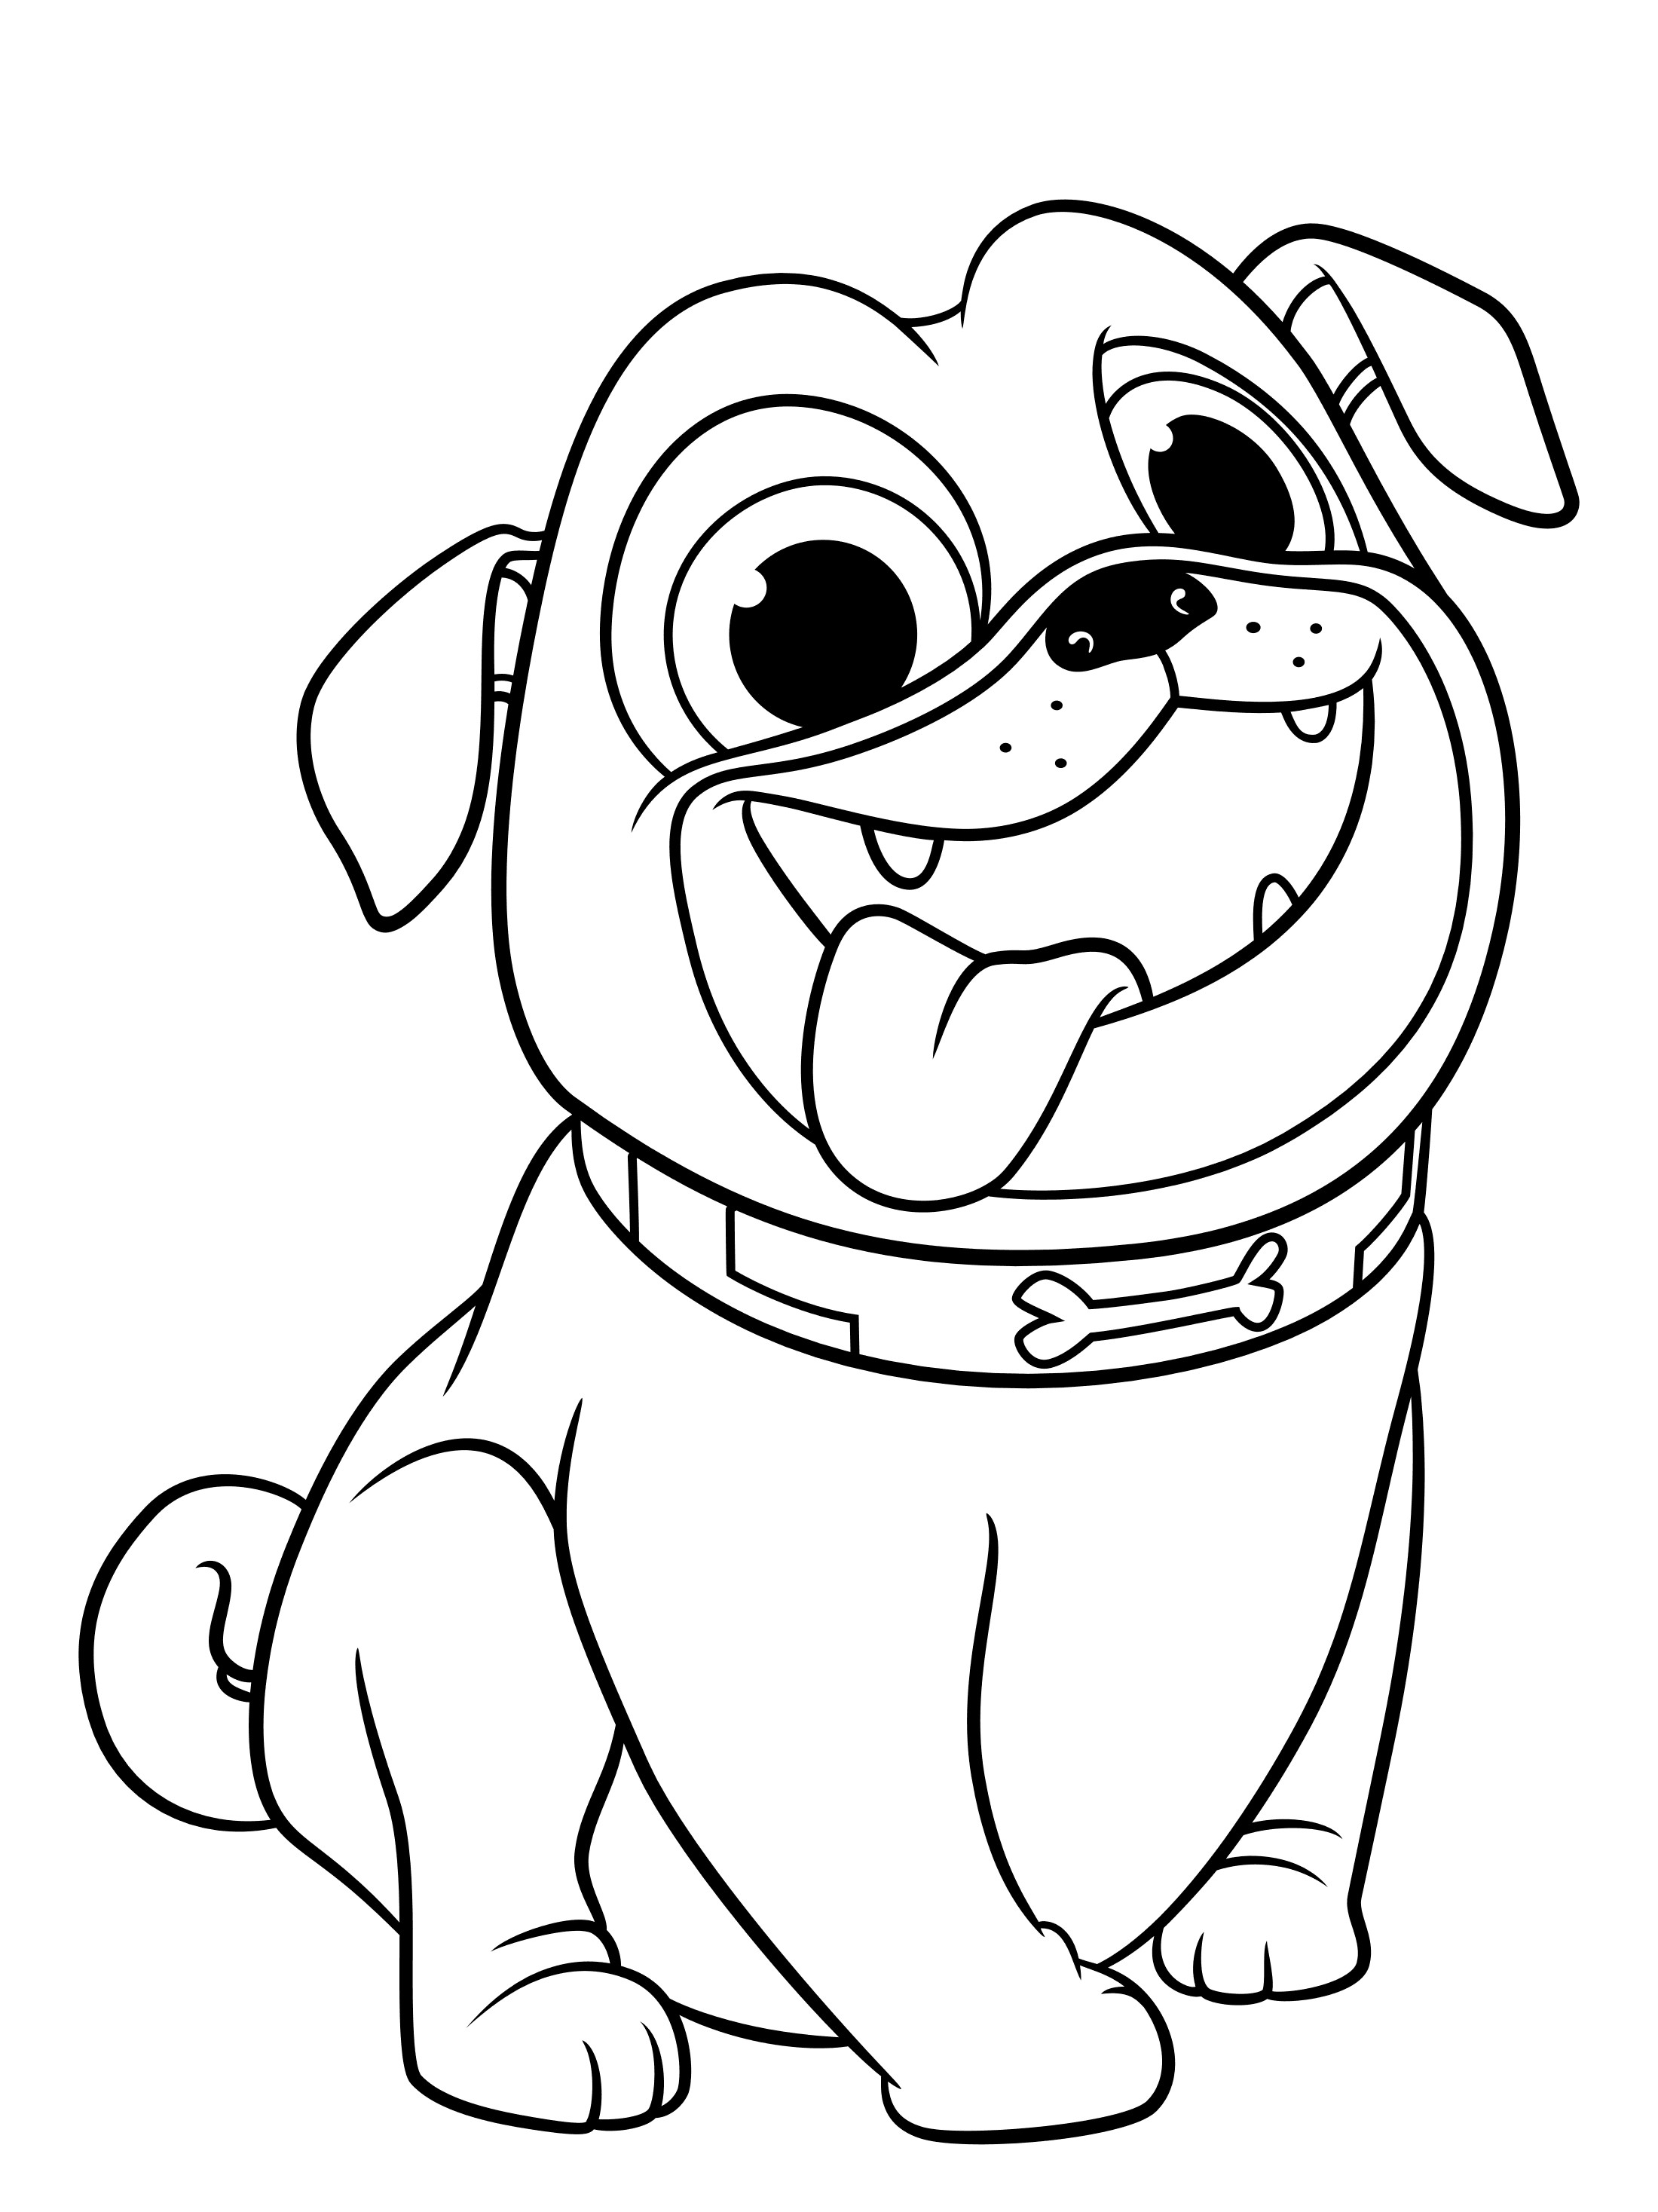 kids dog coloring pages bulldog coloring pages best coloring pages for kids dog kids pages coloring